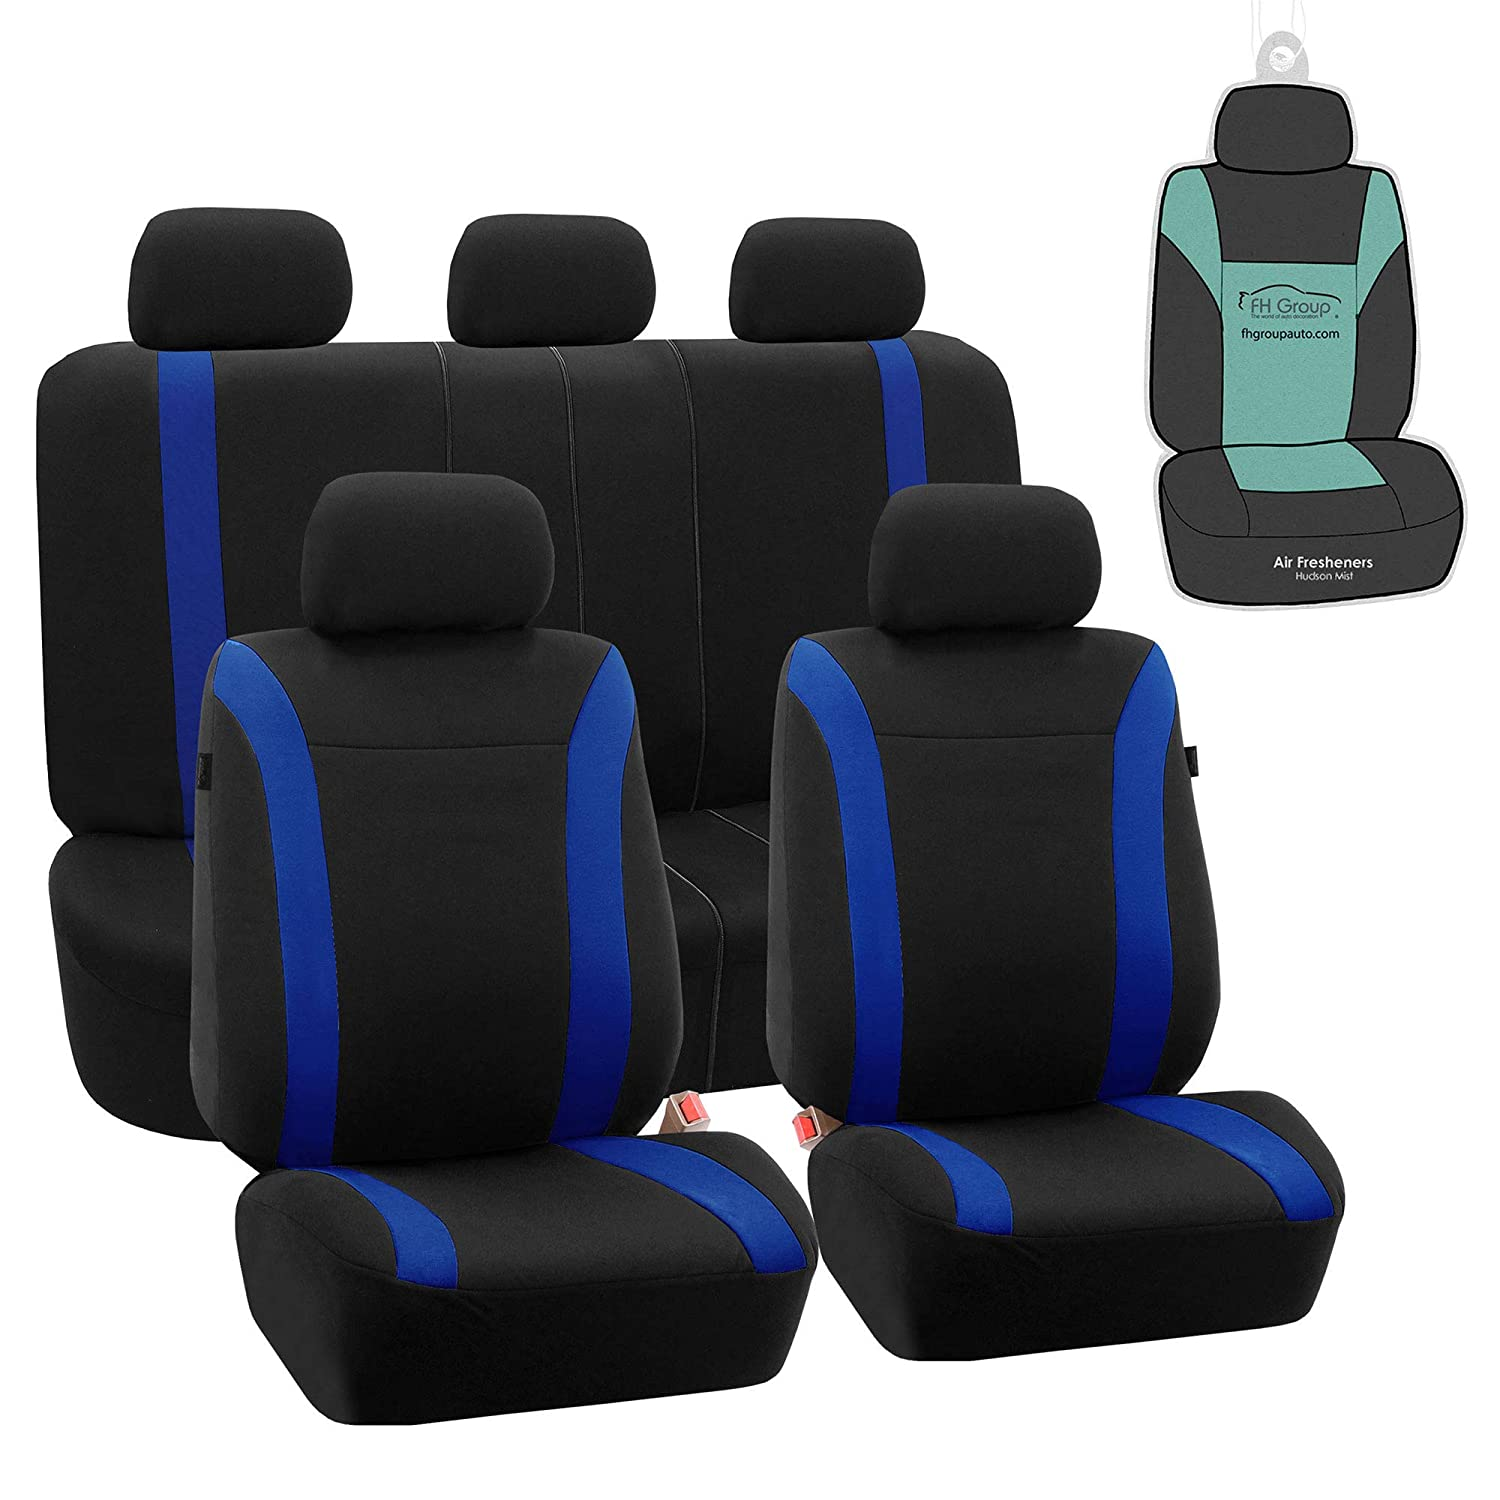 FH Group FB054115 Black Cosmopolitan Flat Cloth Full Set Car Seat Covers, (Airbag Compatible & Split Bench) w Gift, Blue/Black Color -Fit Most Car, Truck, SUV, or Van